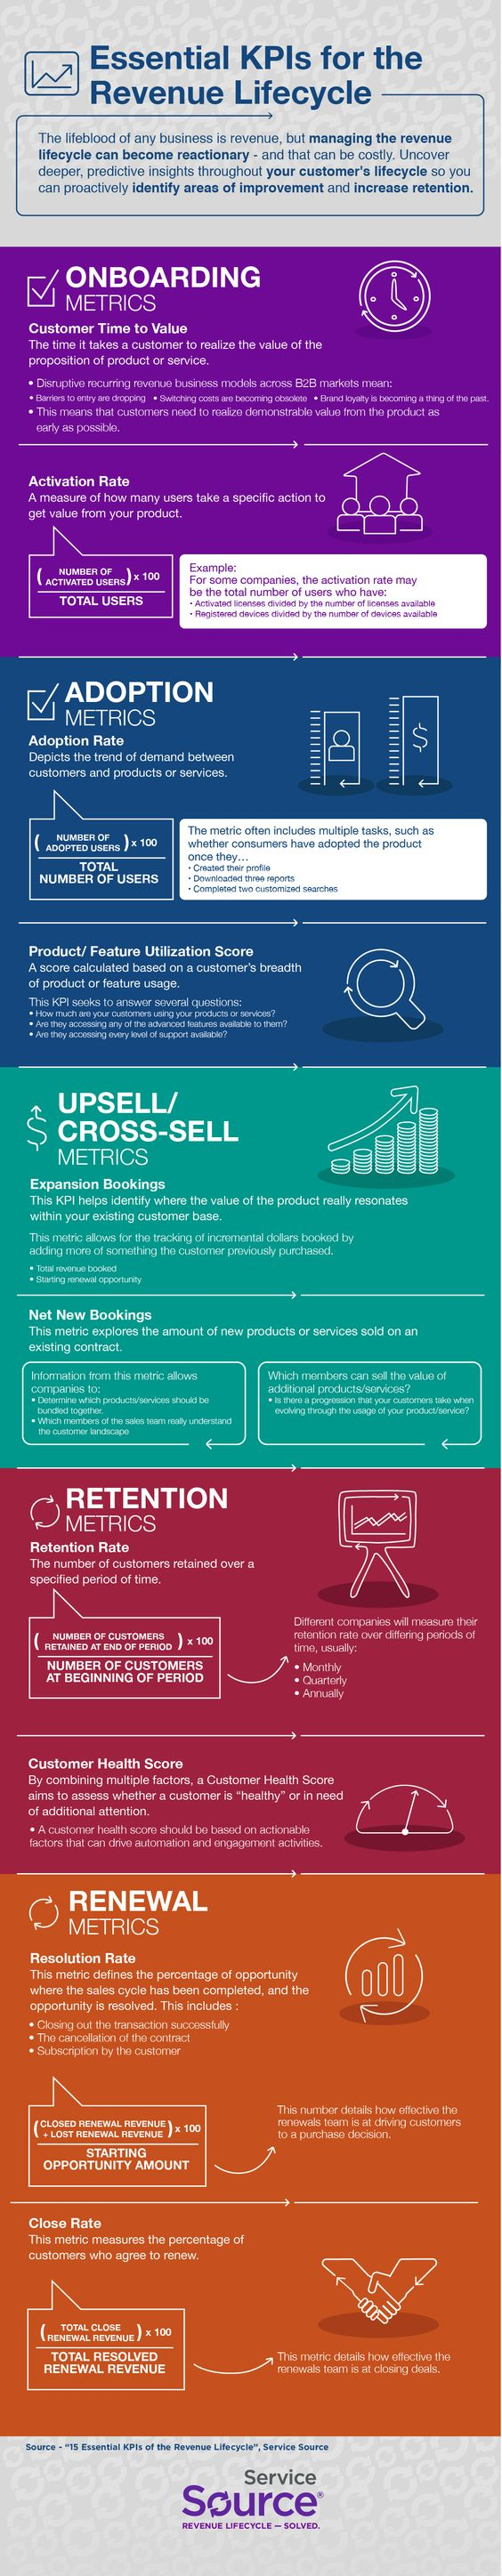 Essential KPIs for the Revenue Lifecycle #infographic #Business #RevenueLifecycle